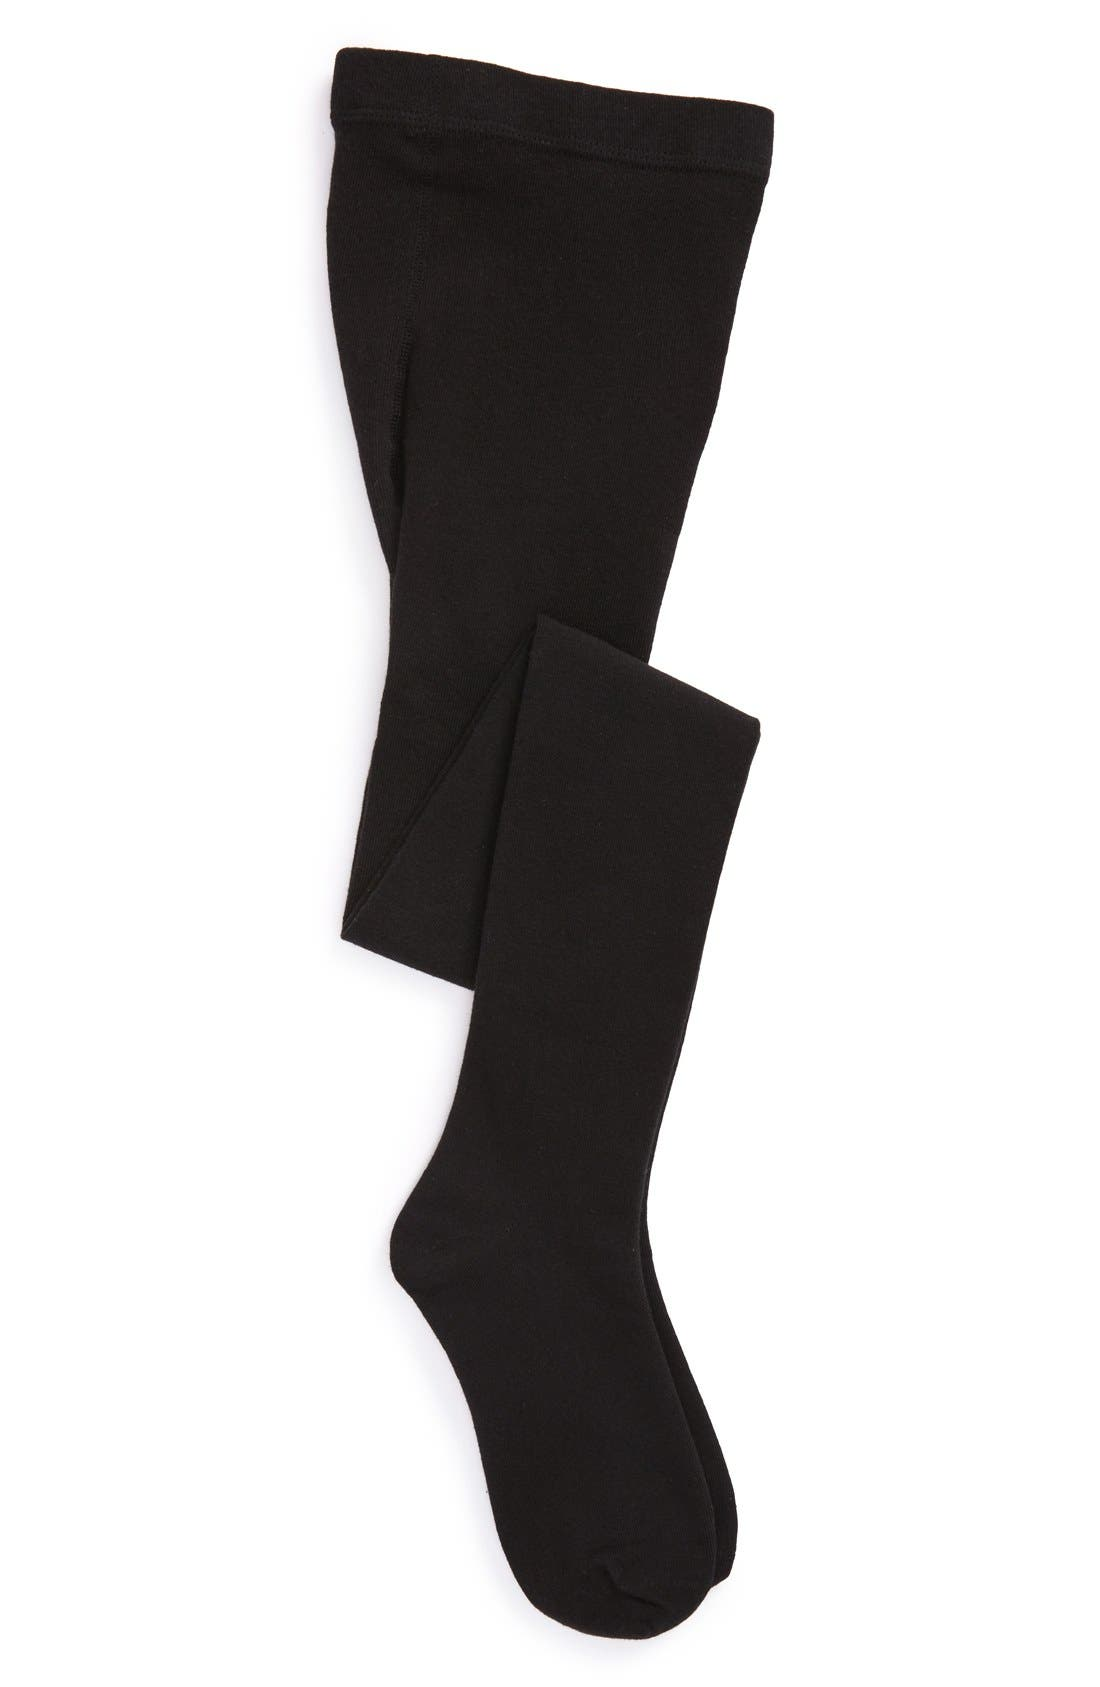 Nordstrom Sweater Tights,                             Main thumbnail 1, color,                             Black